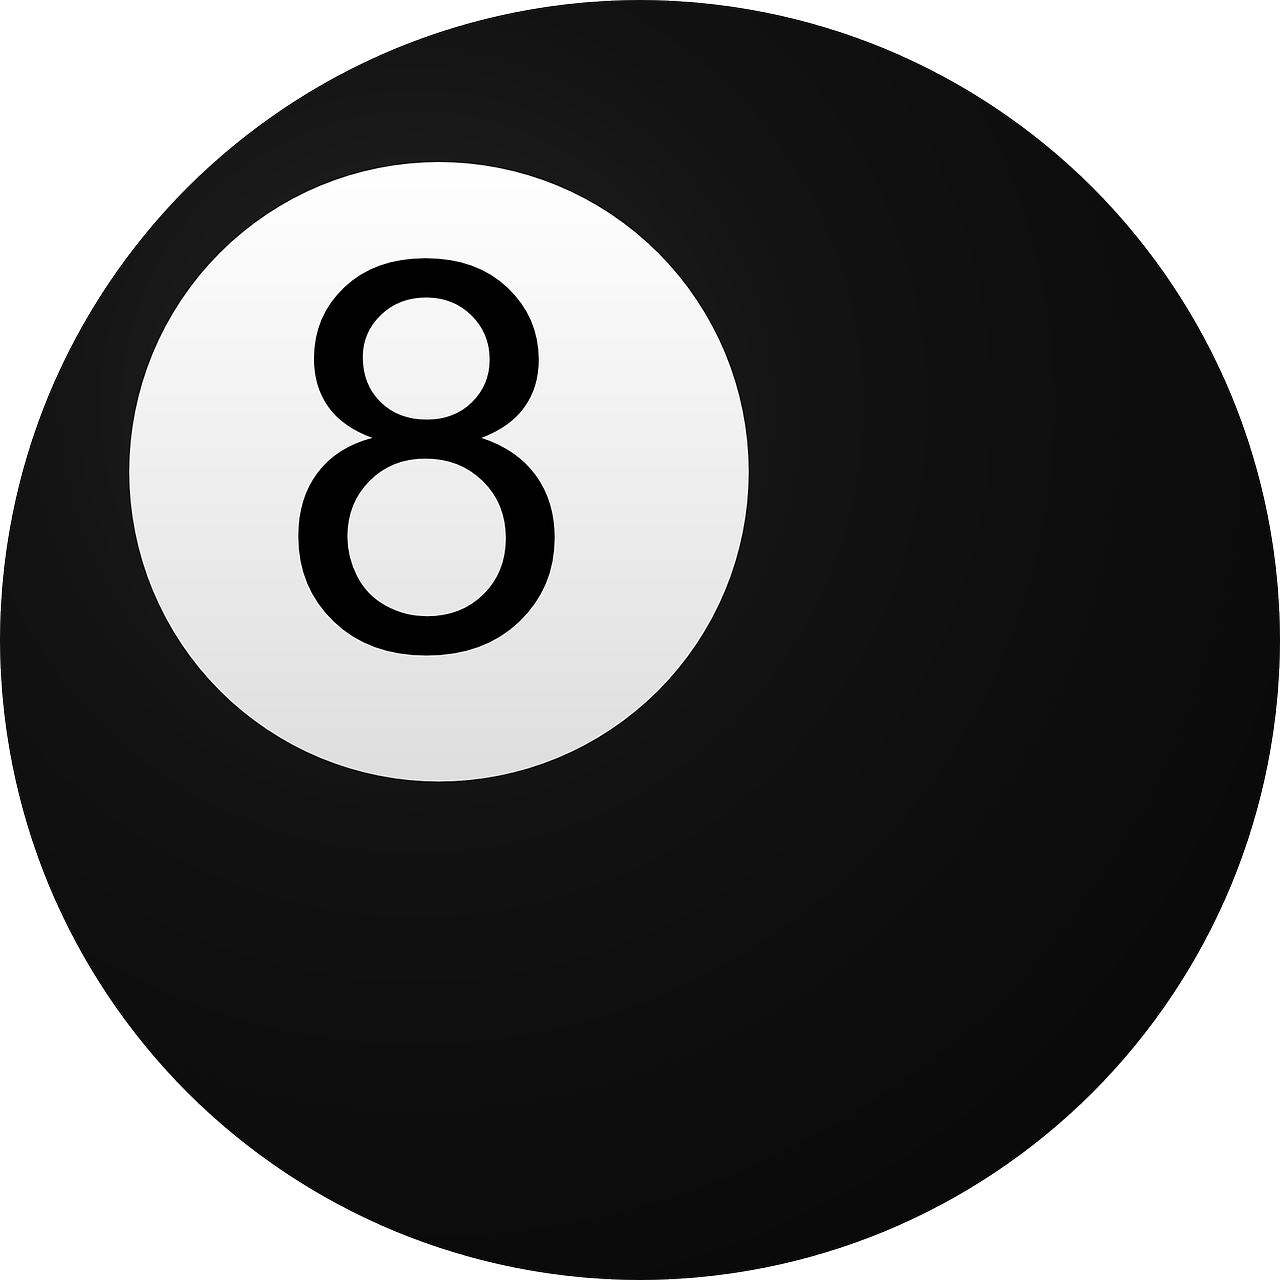 billiard ball,8,billiard,ball,black,circle,eight,pool,table,free vector graphics,free pictures, free photos, free images, royalty free, free illustrations